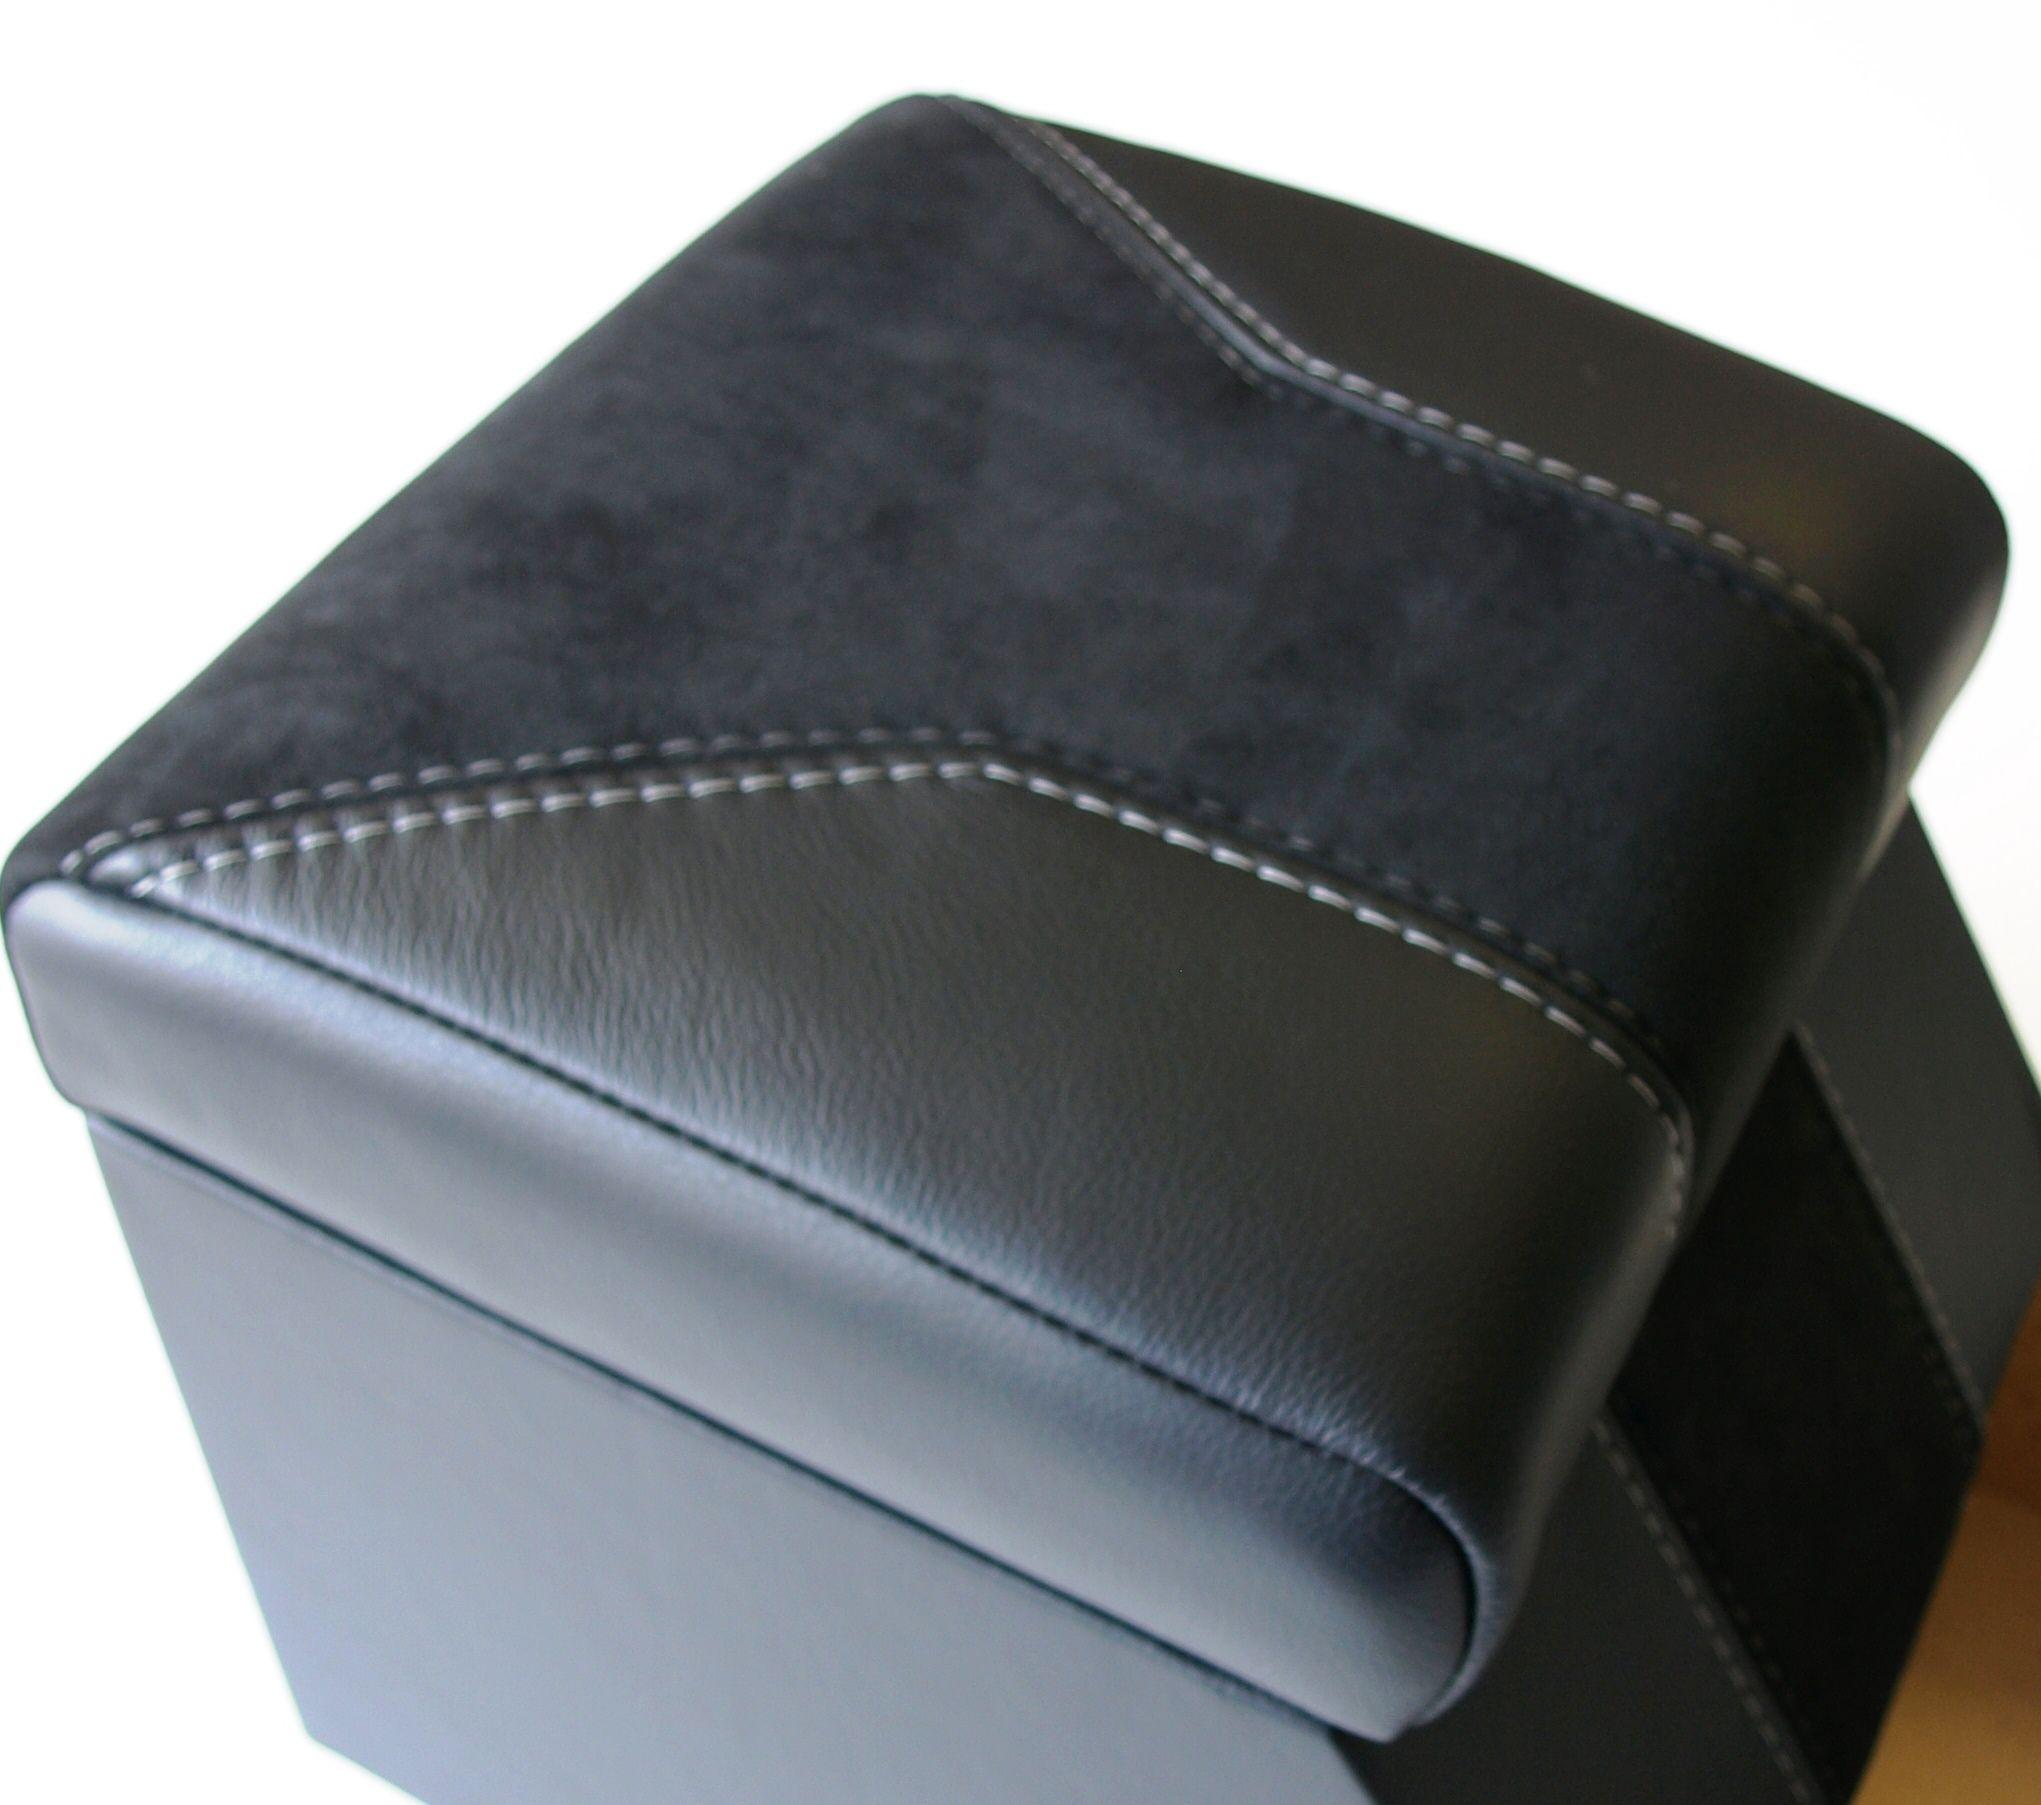 New design Landrover defender leather retrim cubby box lid by www.ruskindesign.co.uk